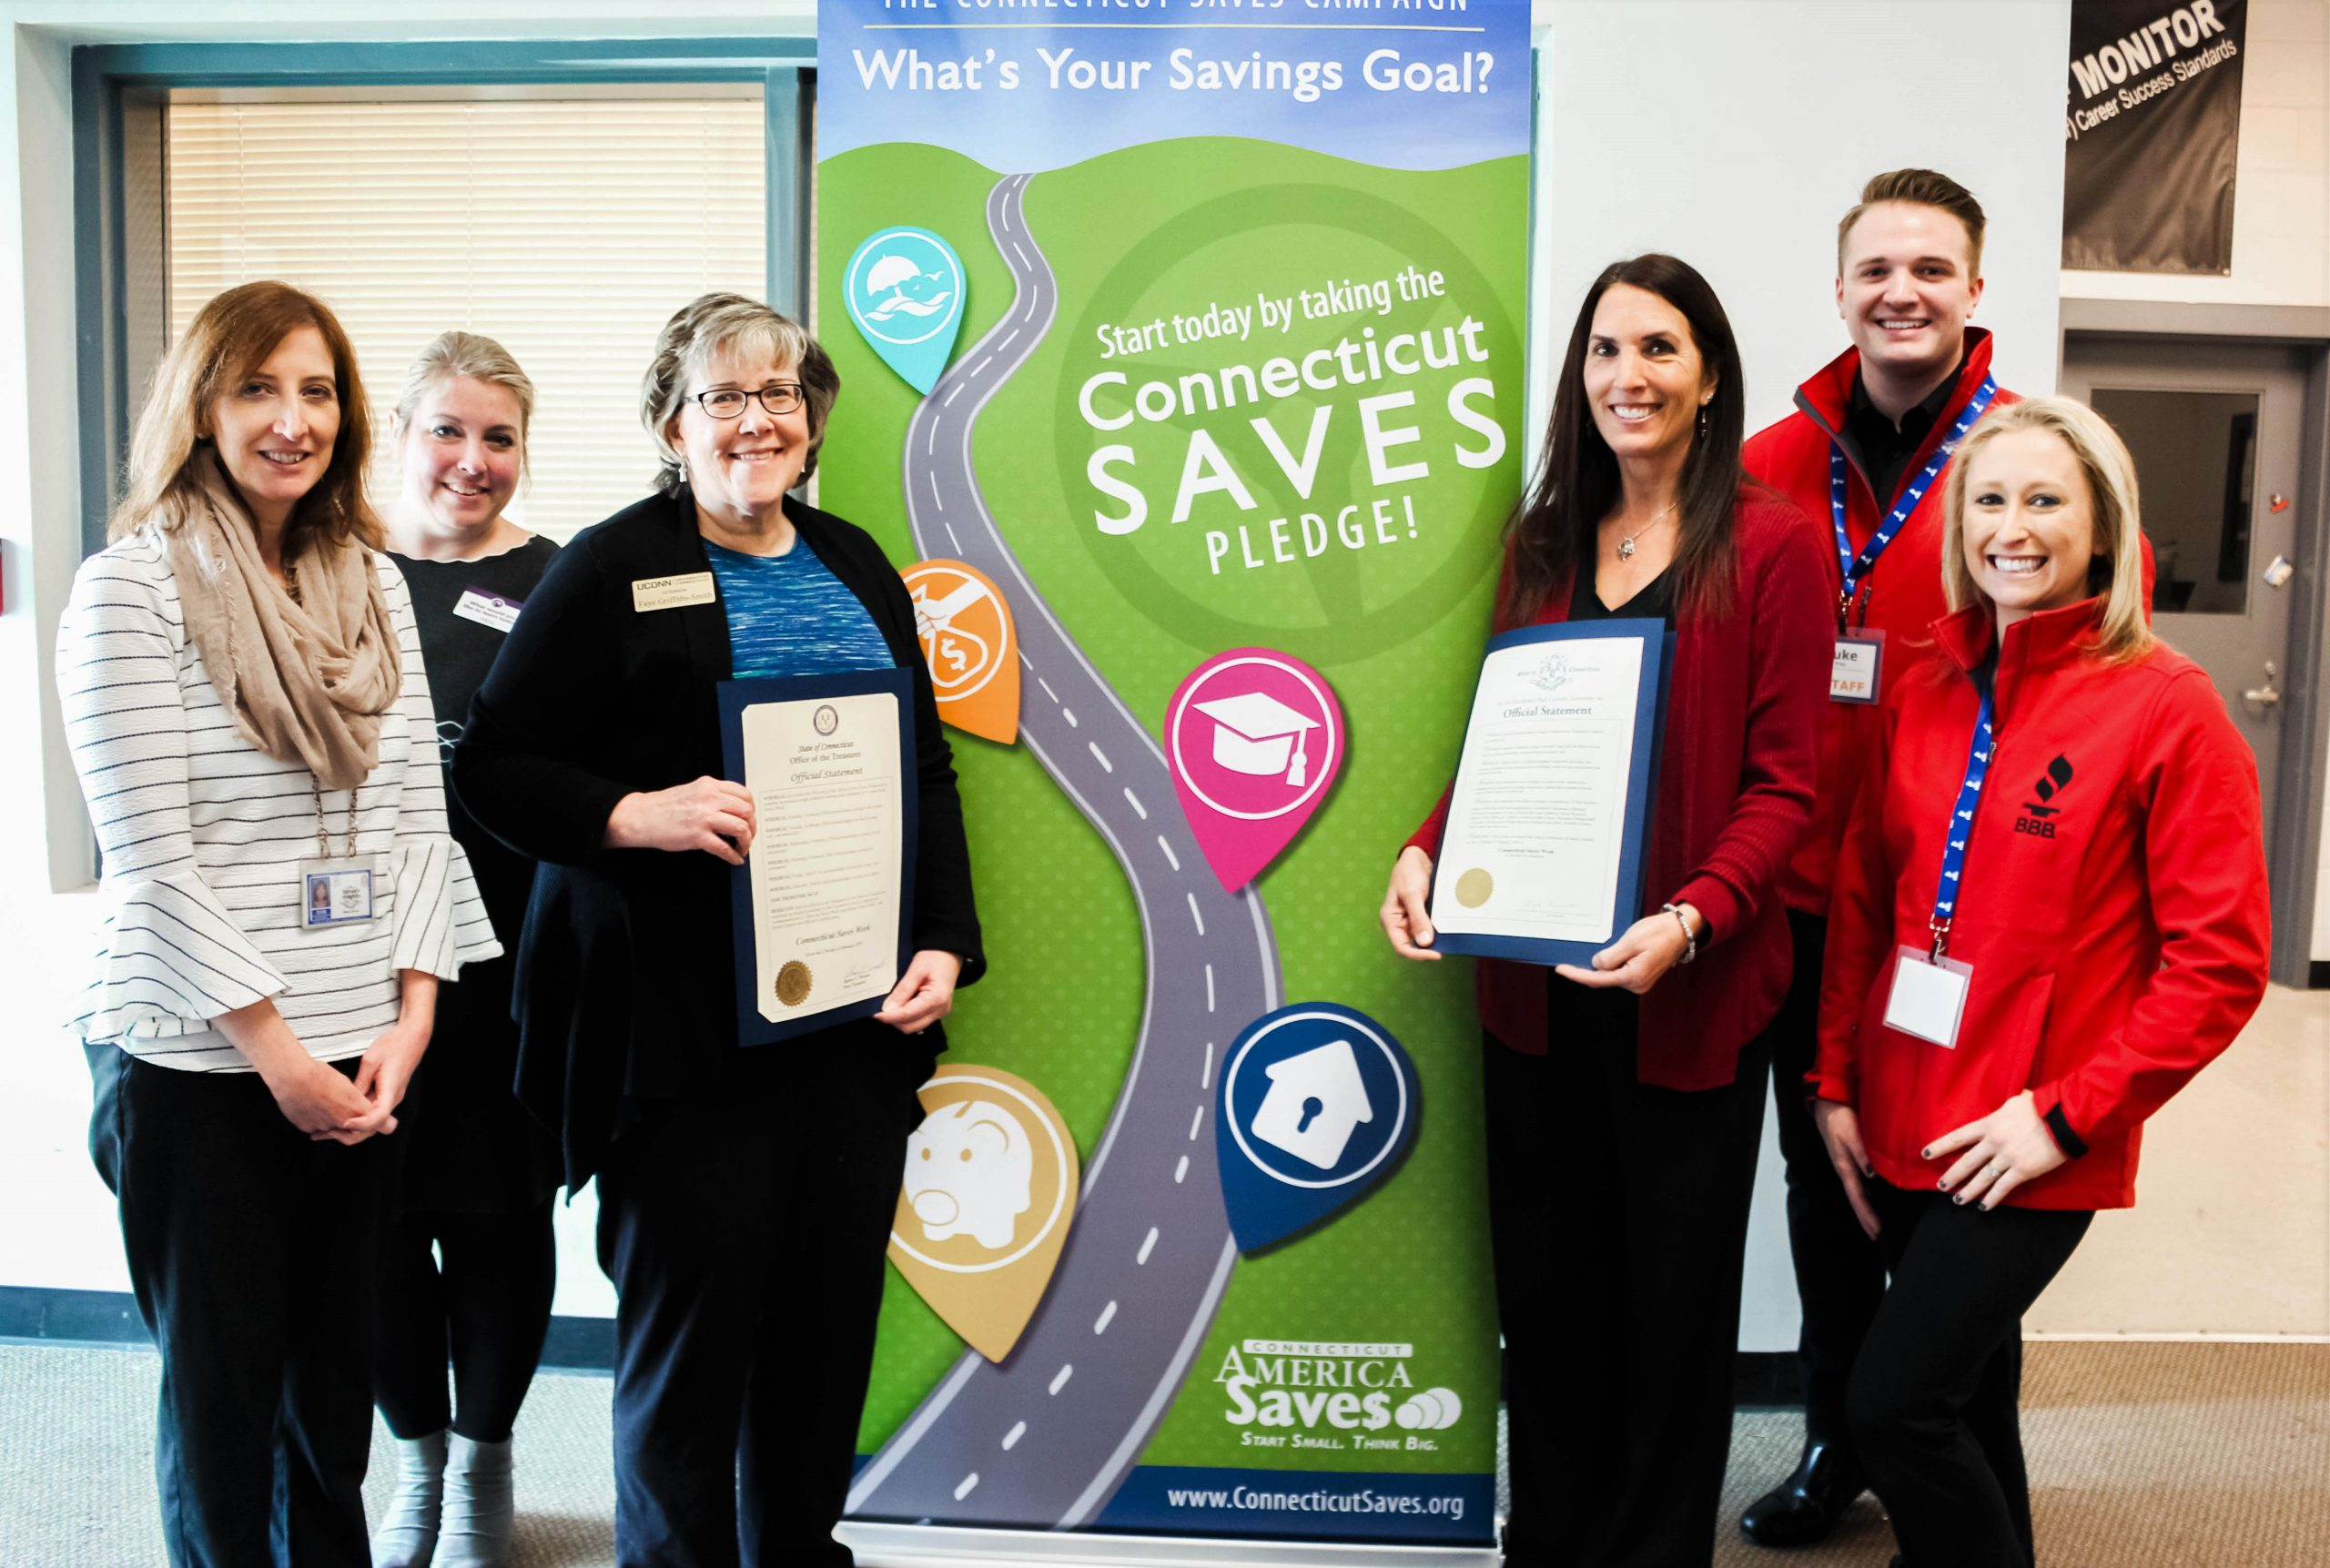 members of the Connecticut Saves team at the Hartford Jobs Academy with the Connecticut Saves proclamation